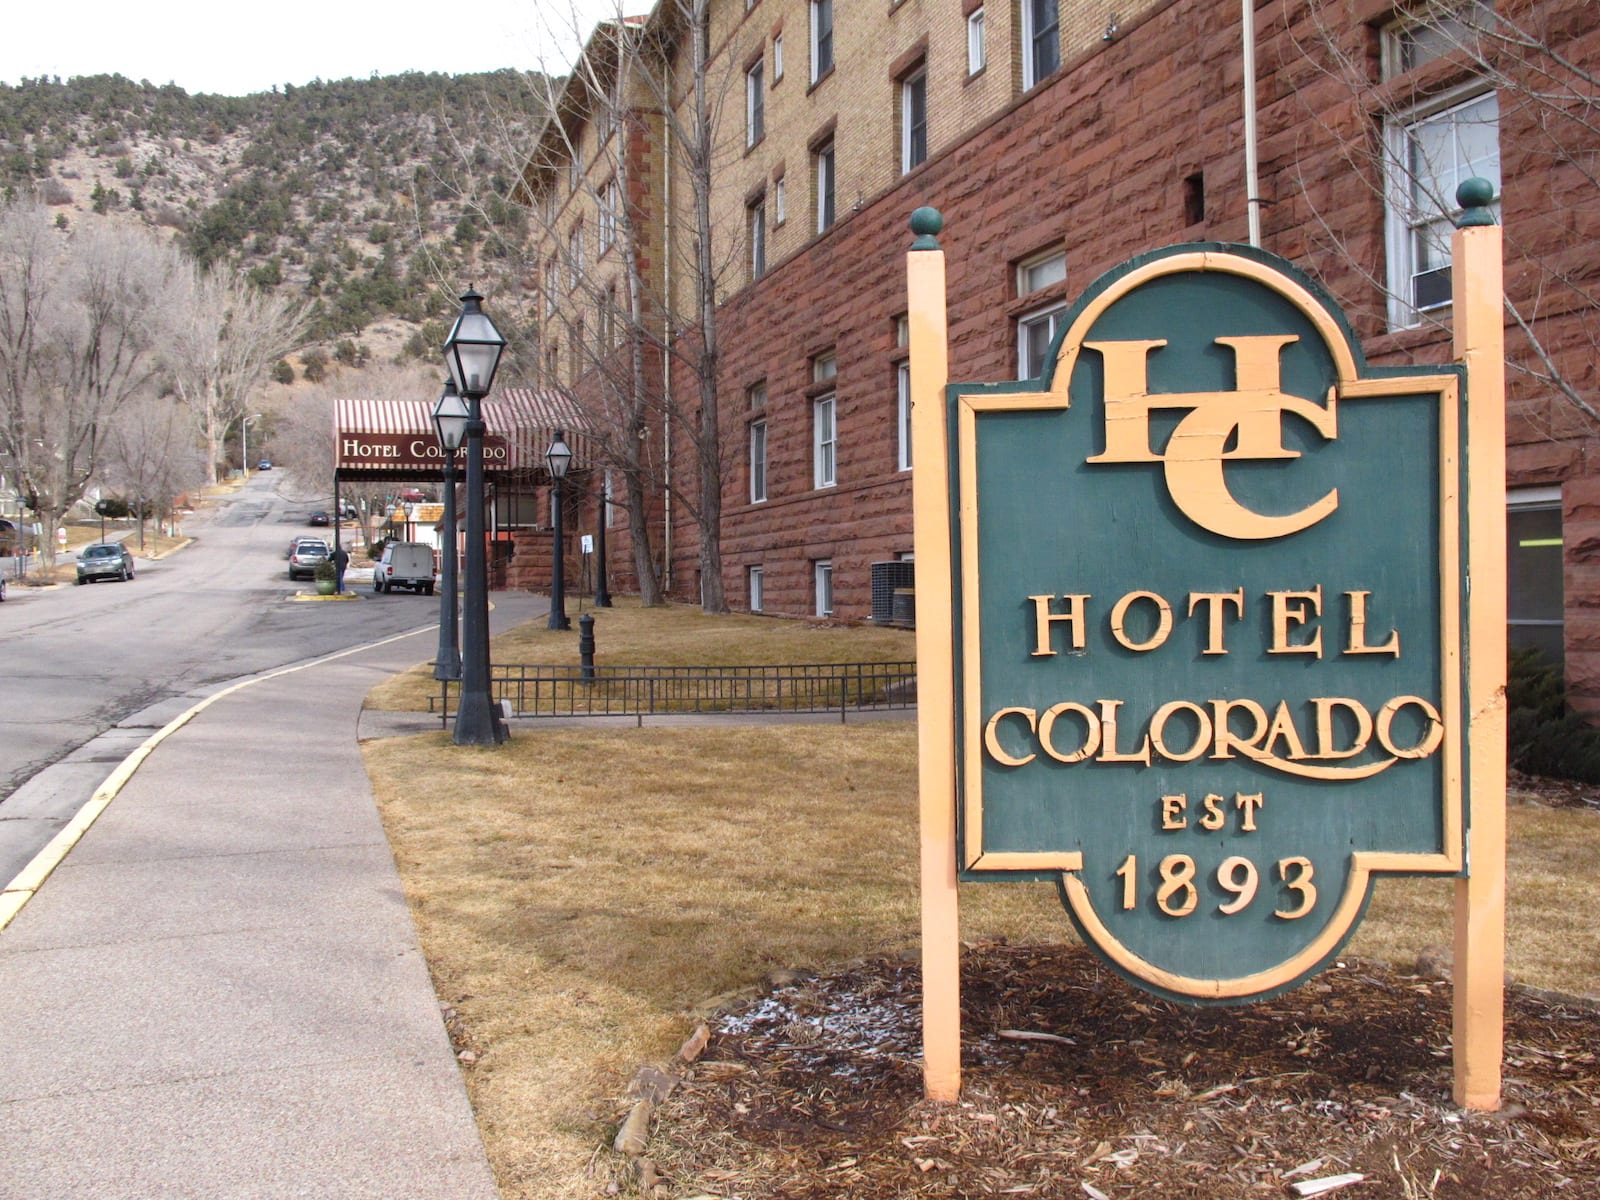 Hotel Colorado Glenwood Springs Sign